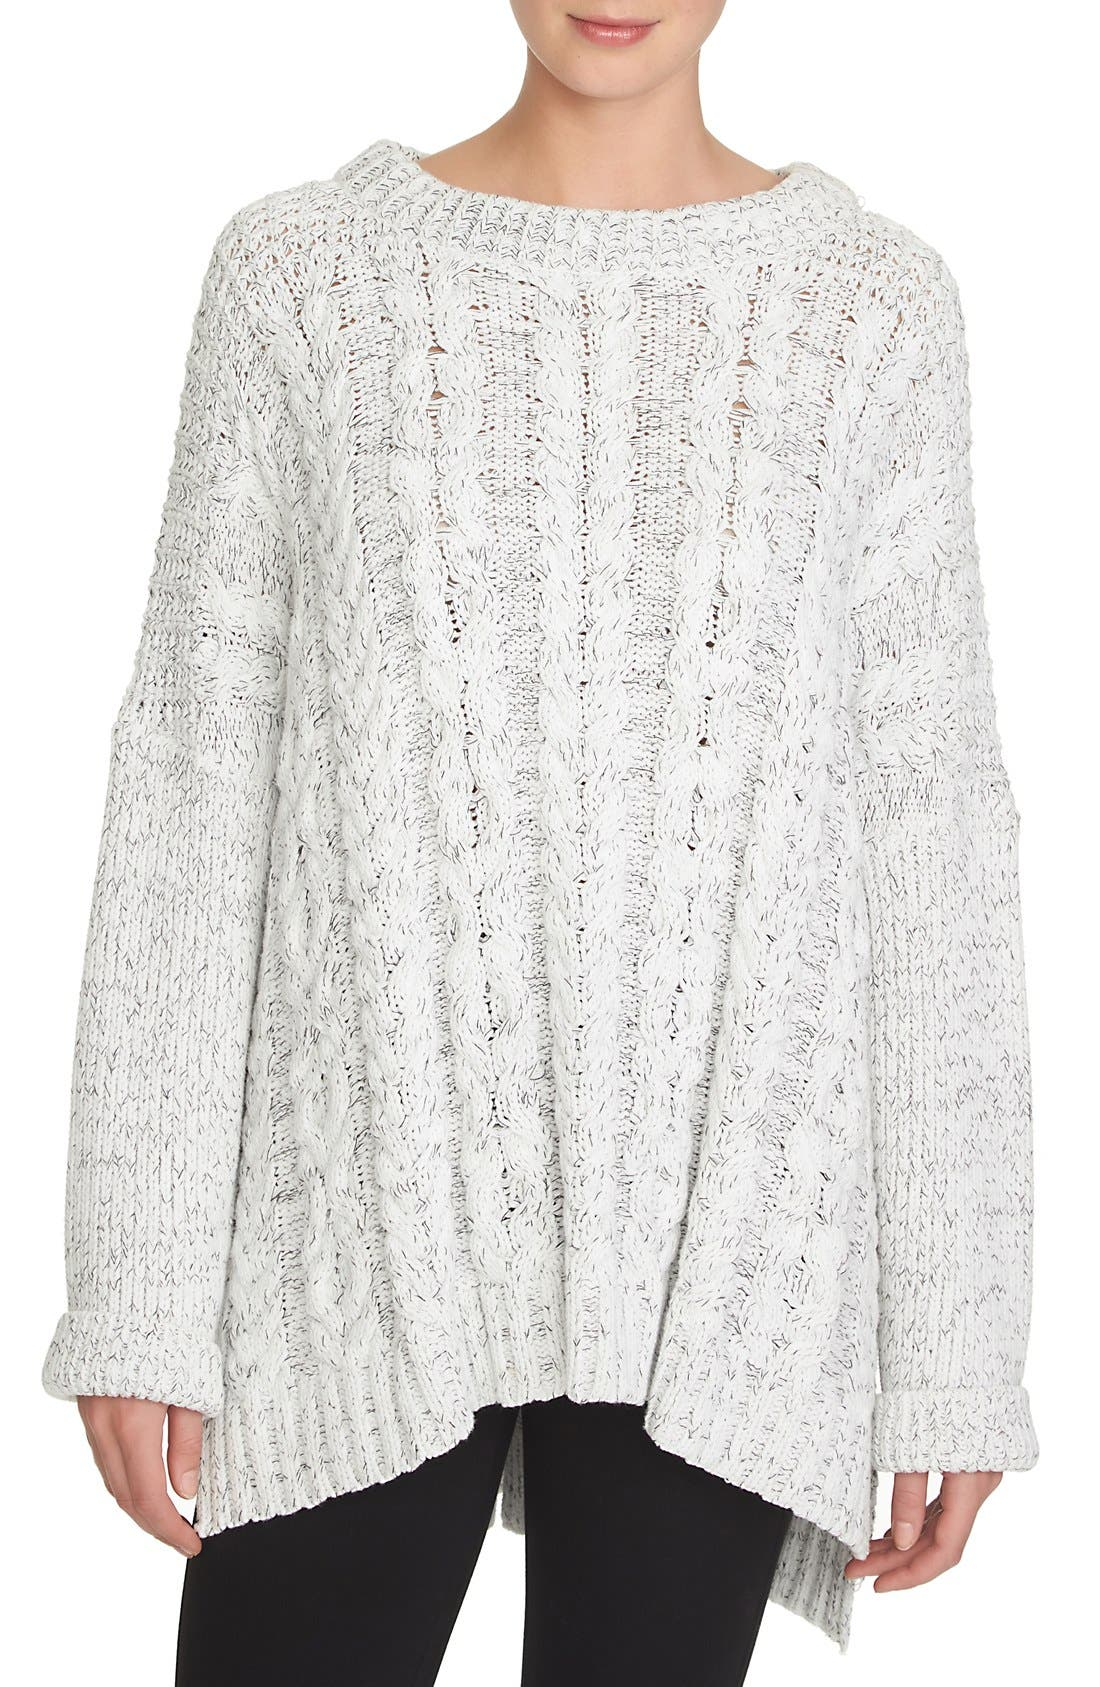 Main Image - 1.STATE Cable Knit Poncho Sweater